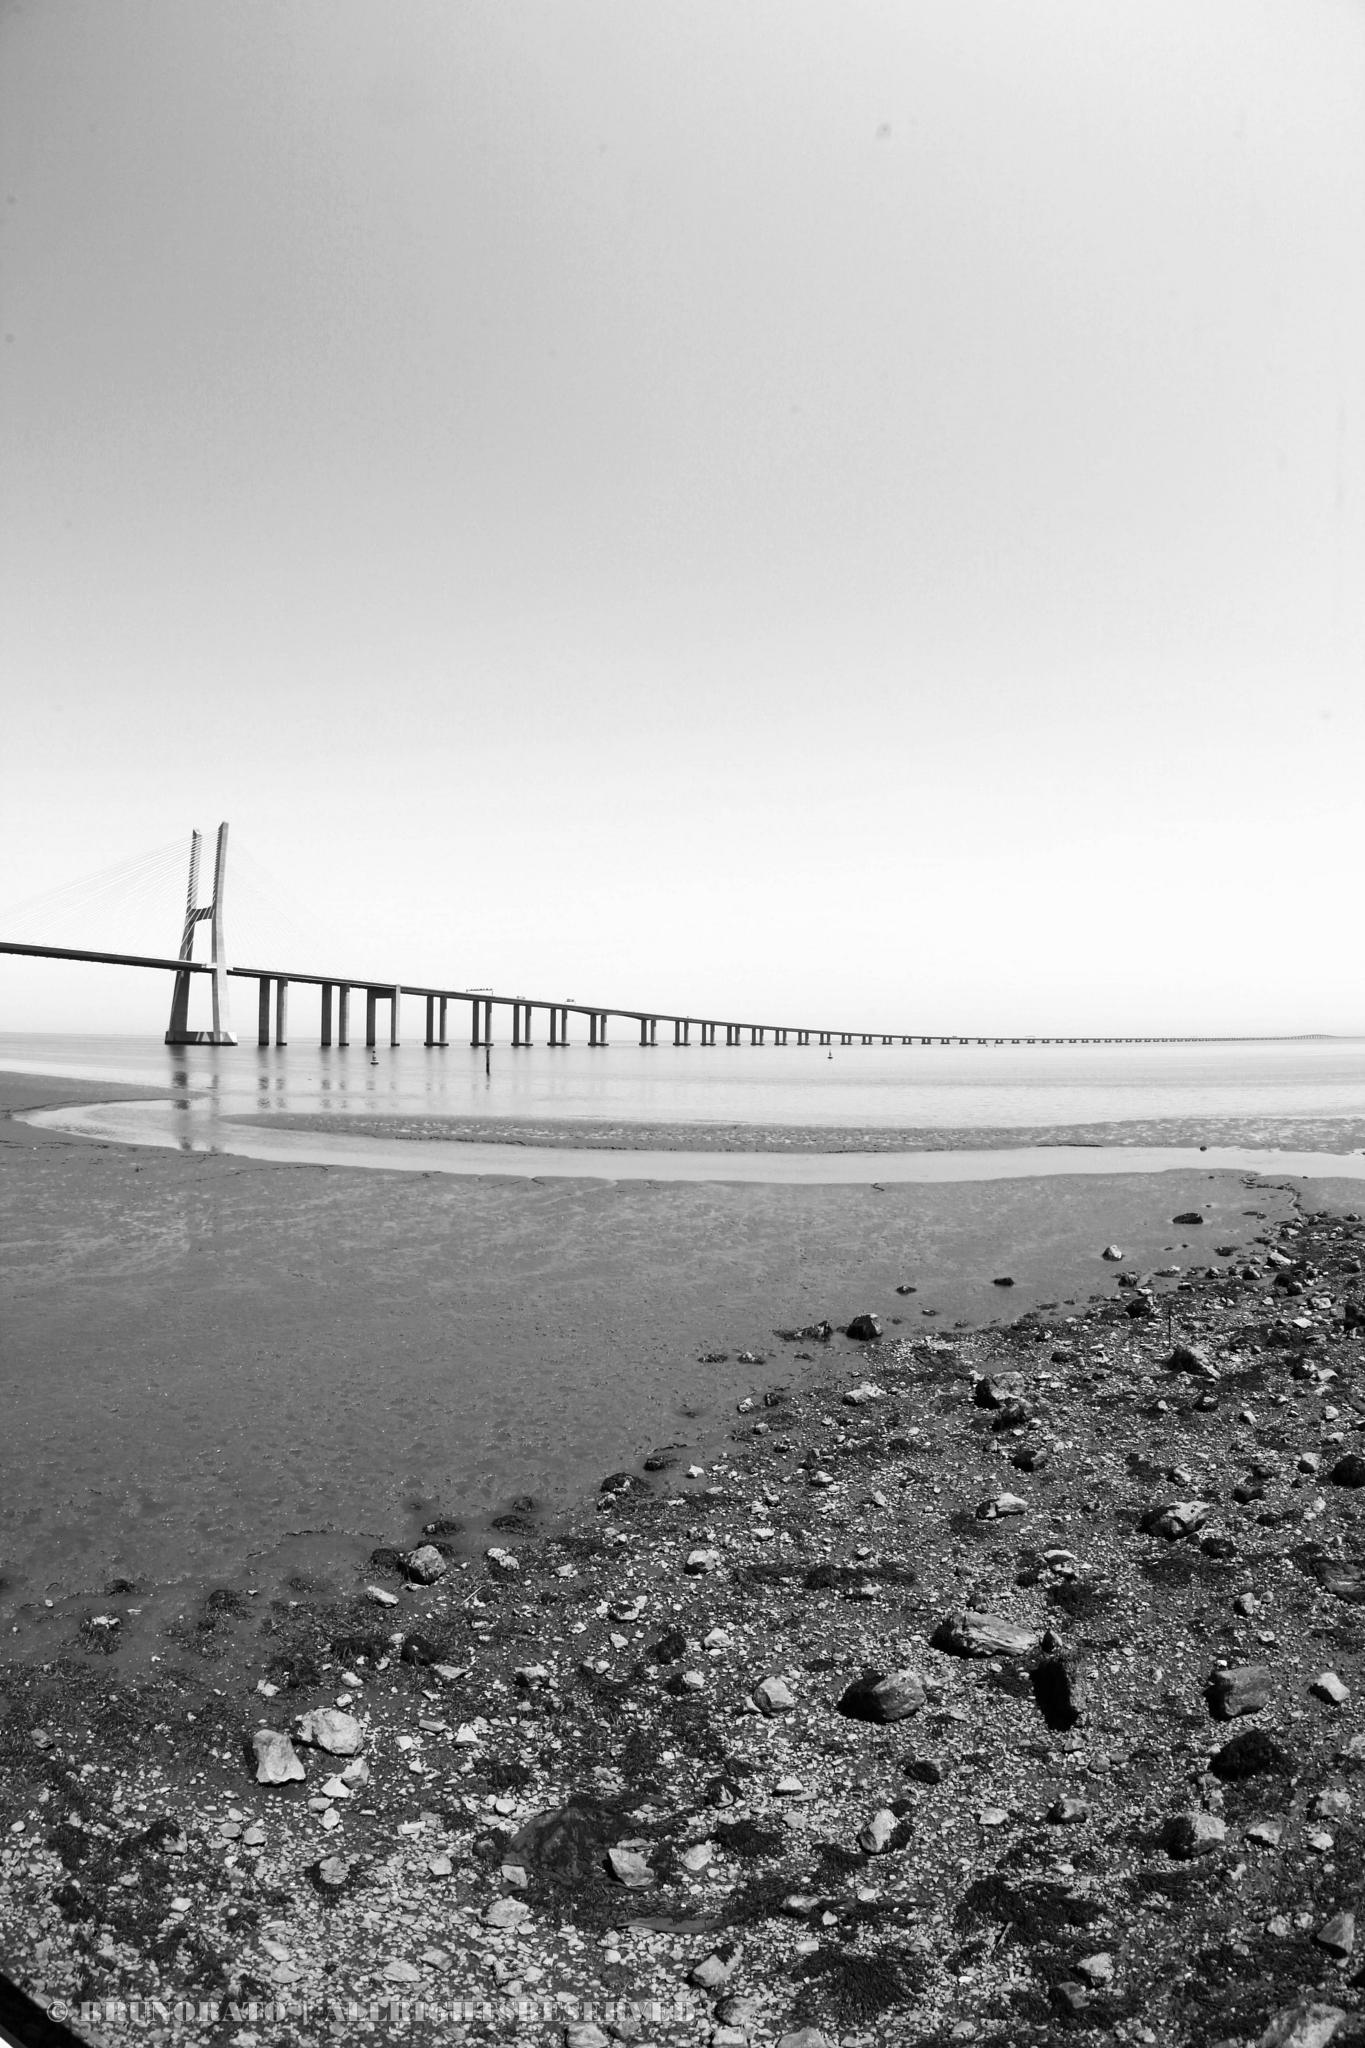 Vasco da Gama Bridge by Bruno Rato